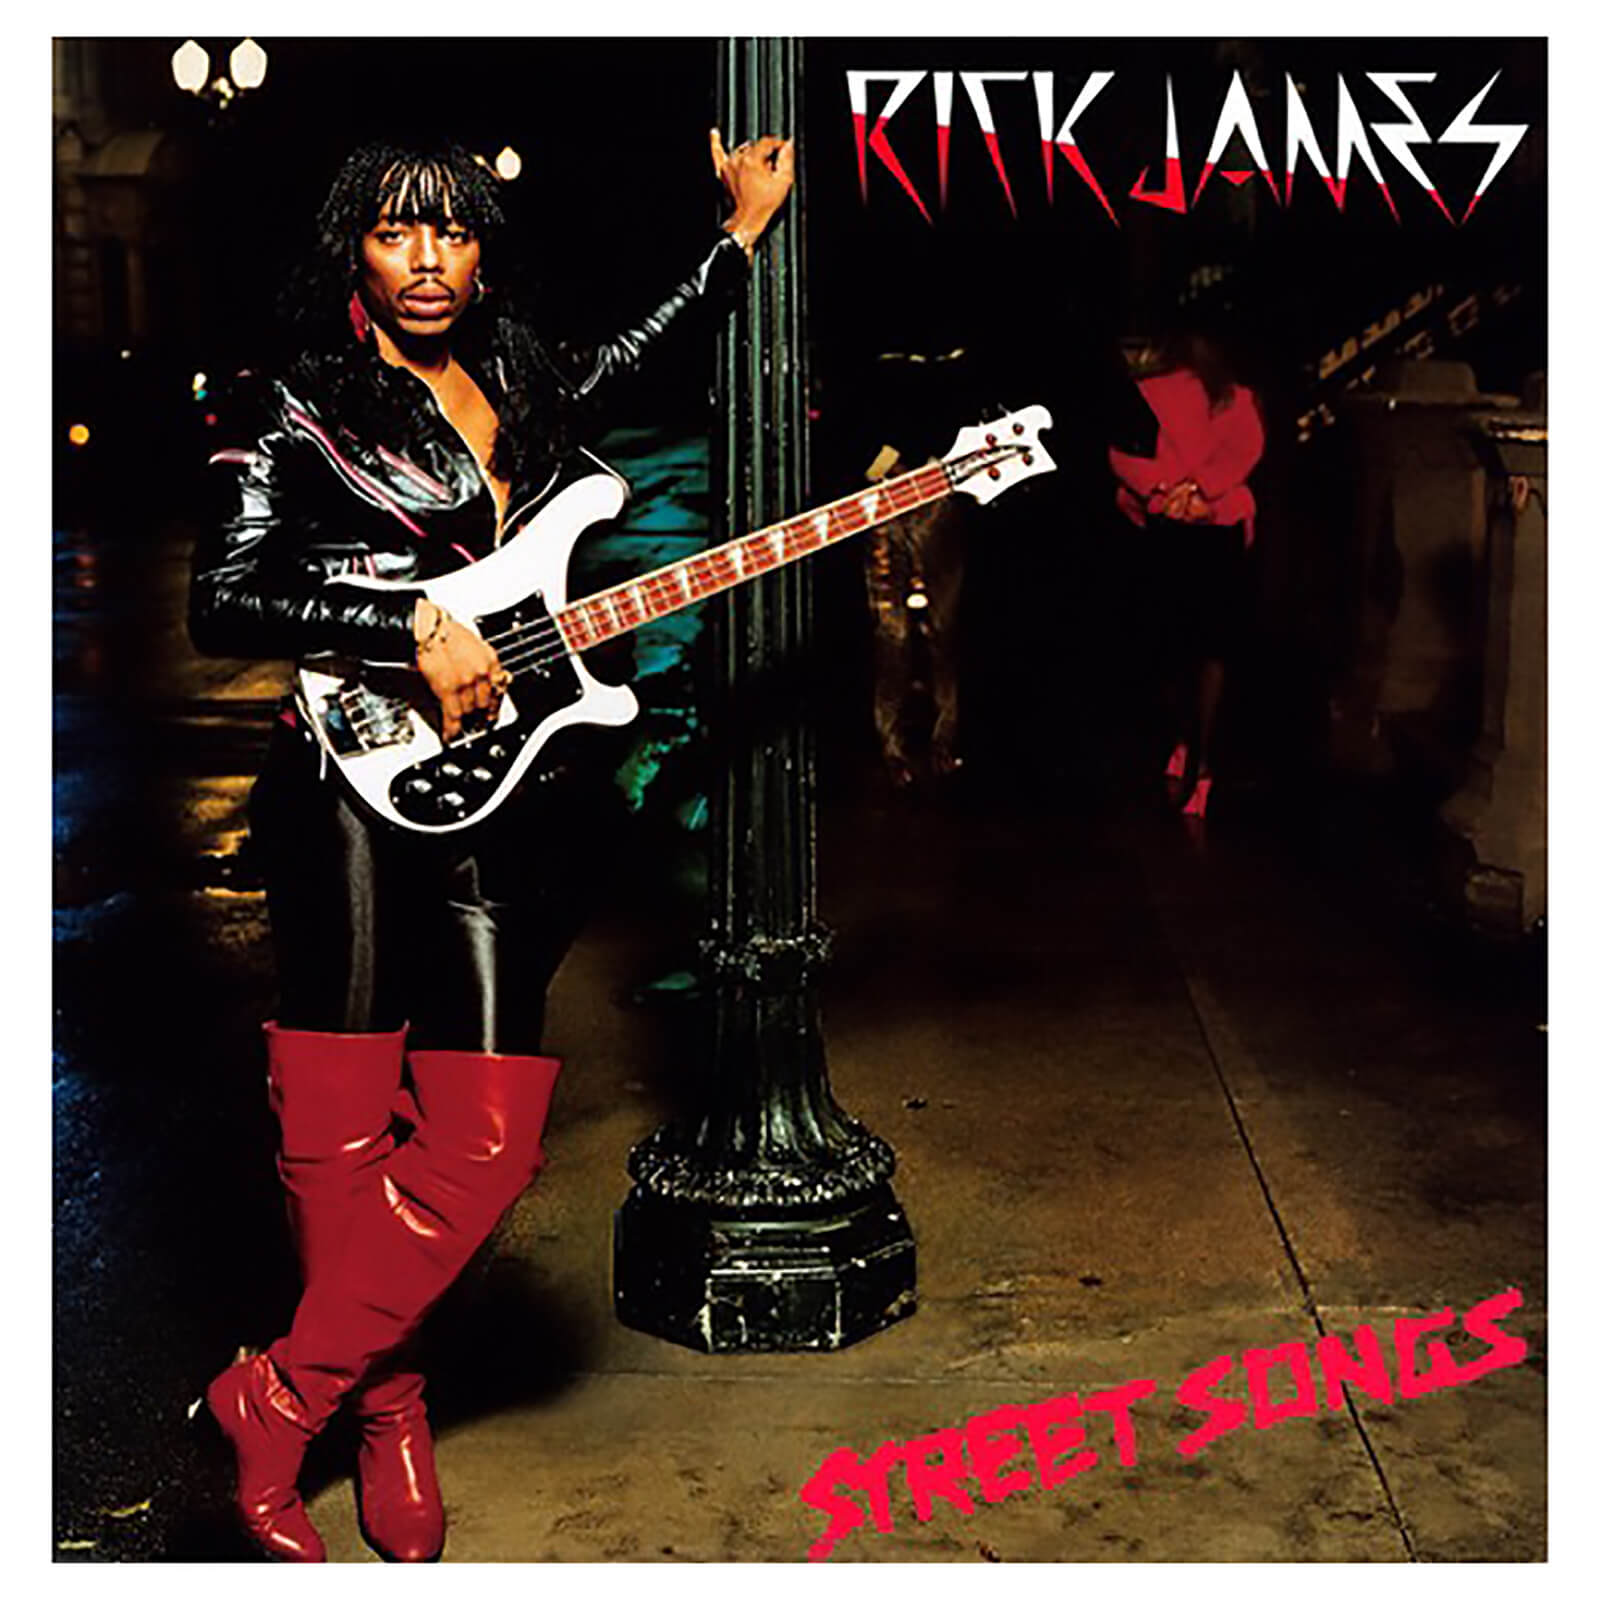 Rick James - Street Songs - Vinyl